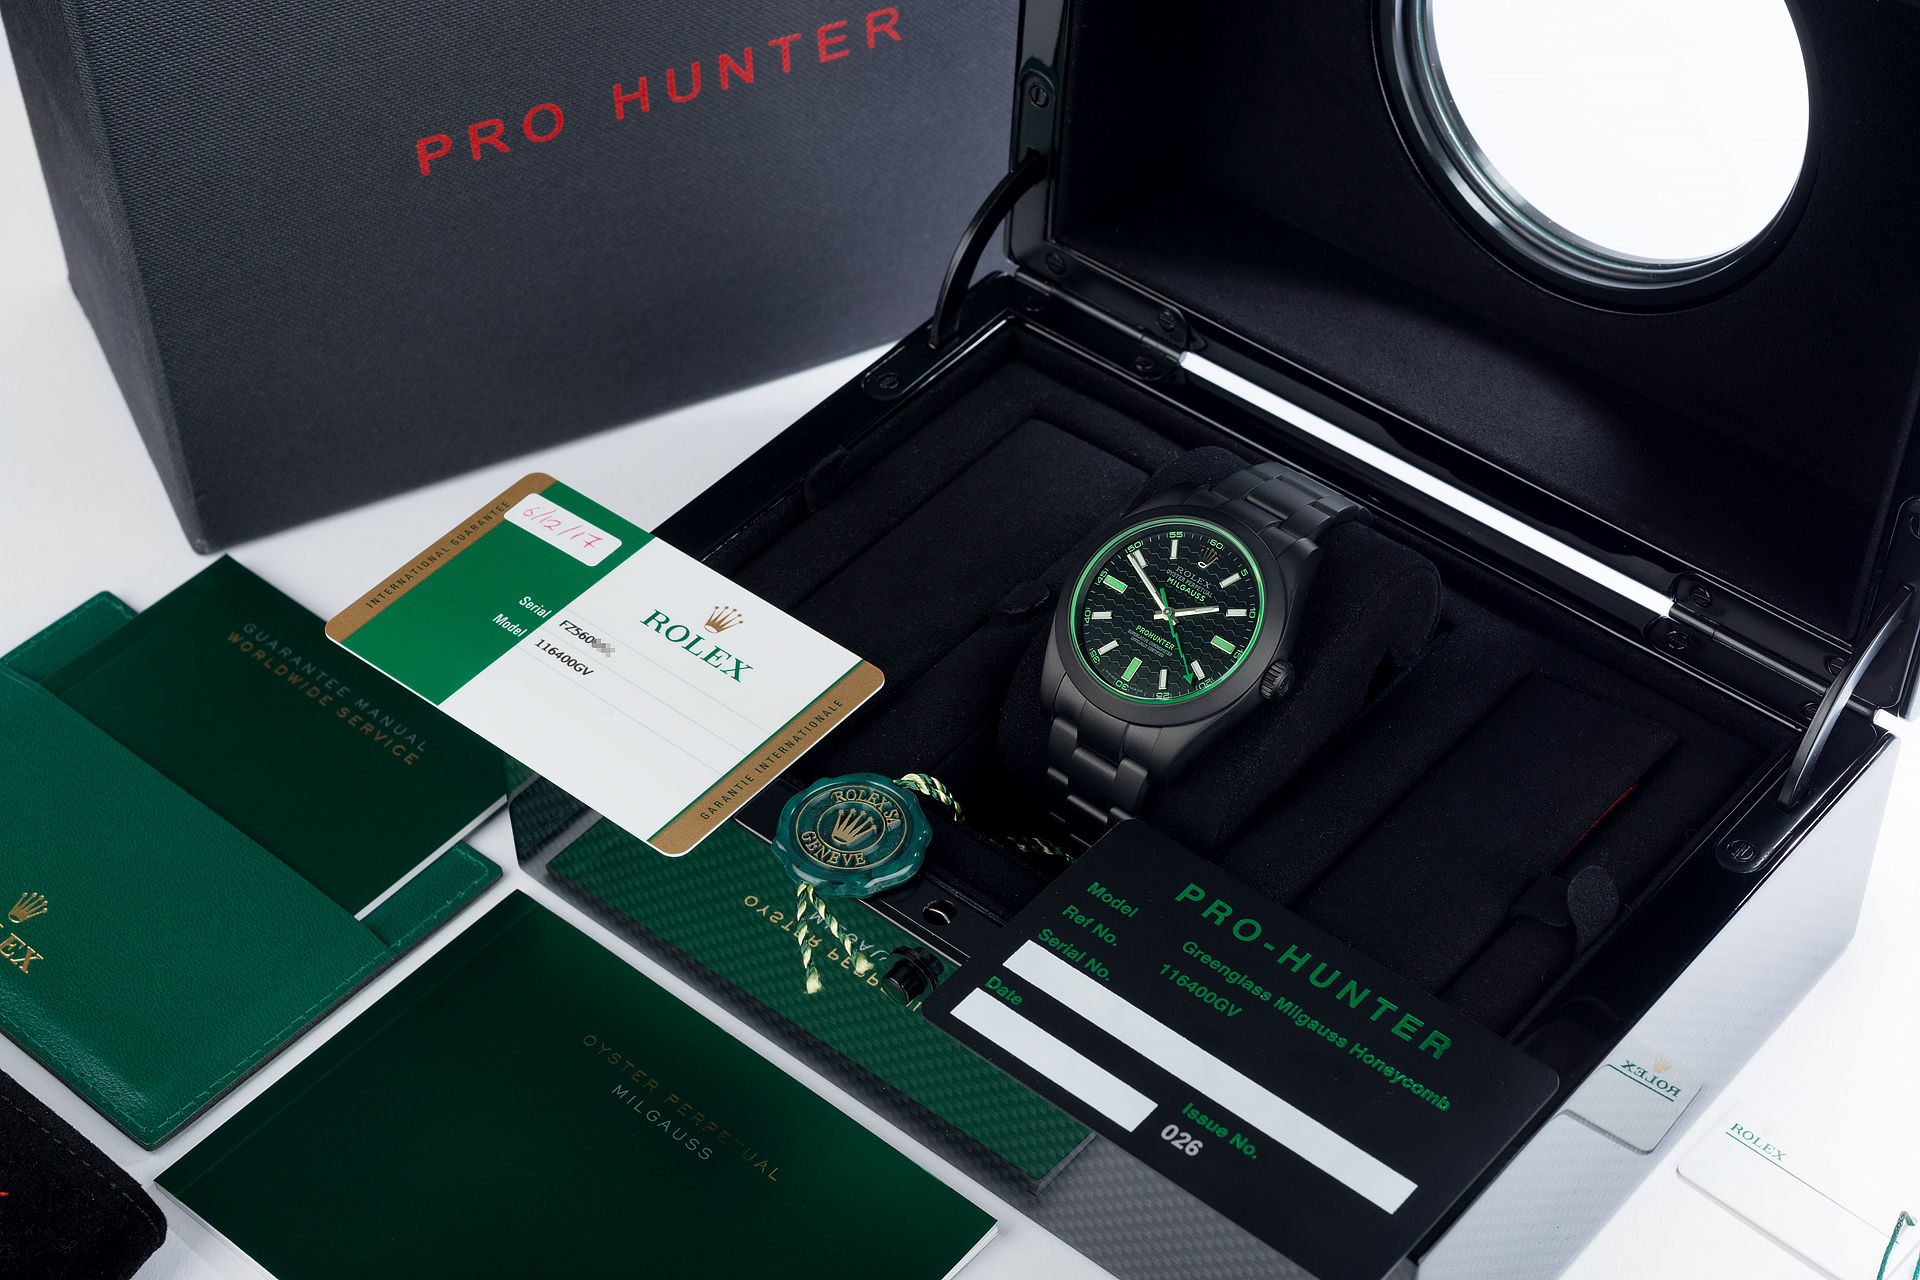 ref 116400GV | Limited Edition 'One of 100' | Pro Hunter Milgauss